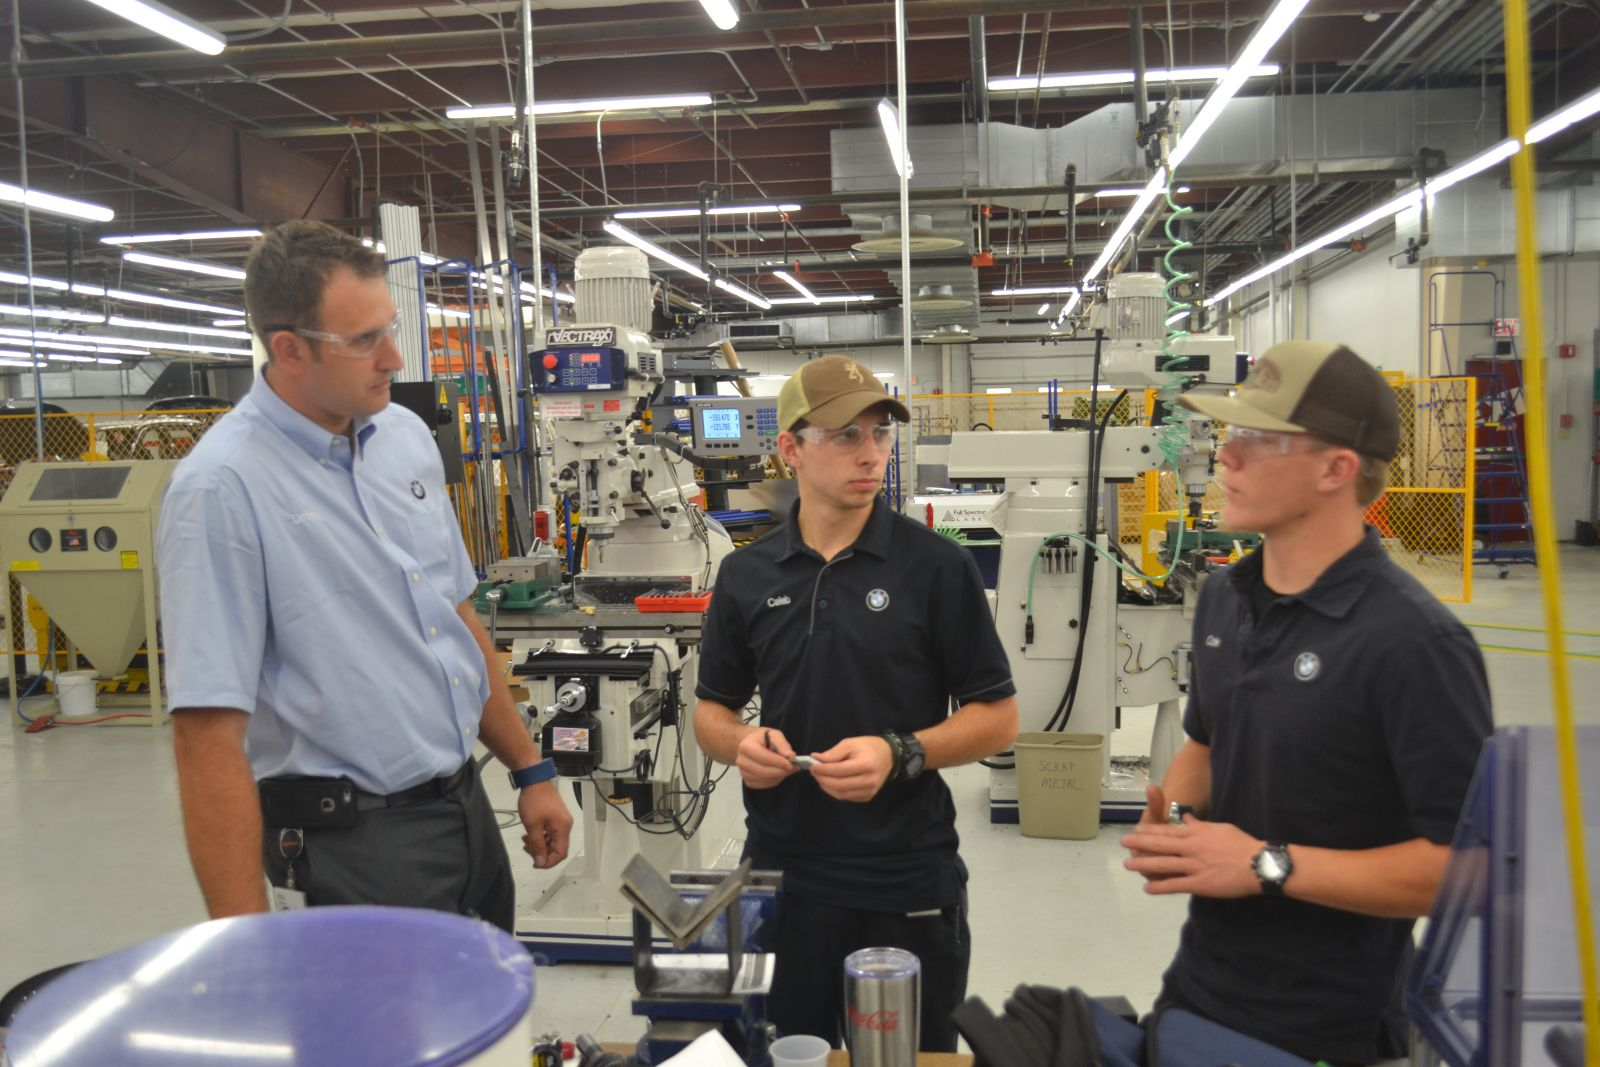 Dmitry Kopytin, left, gets a project update from BMW Scholars Caleb Nelson and Cole Johnson. (Photo by Teresa Cutlip)